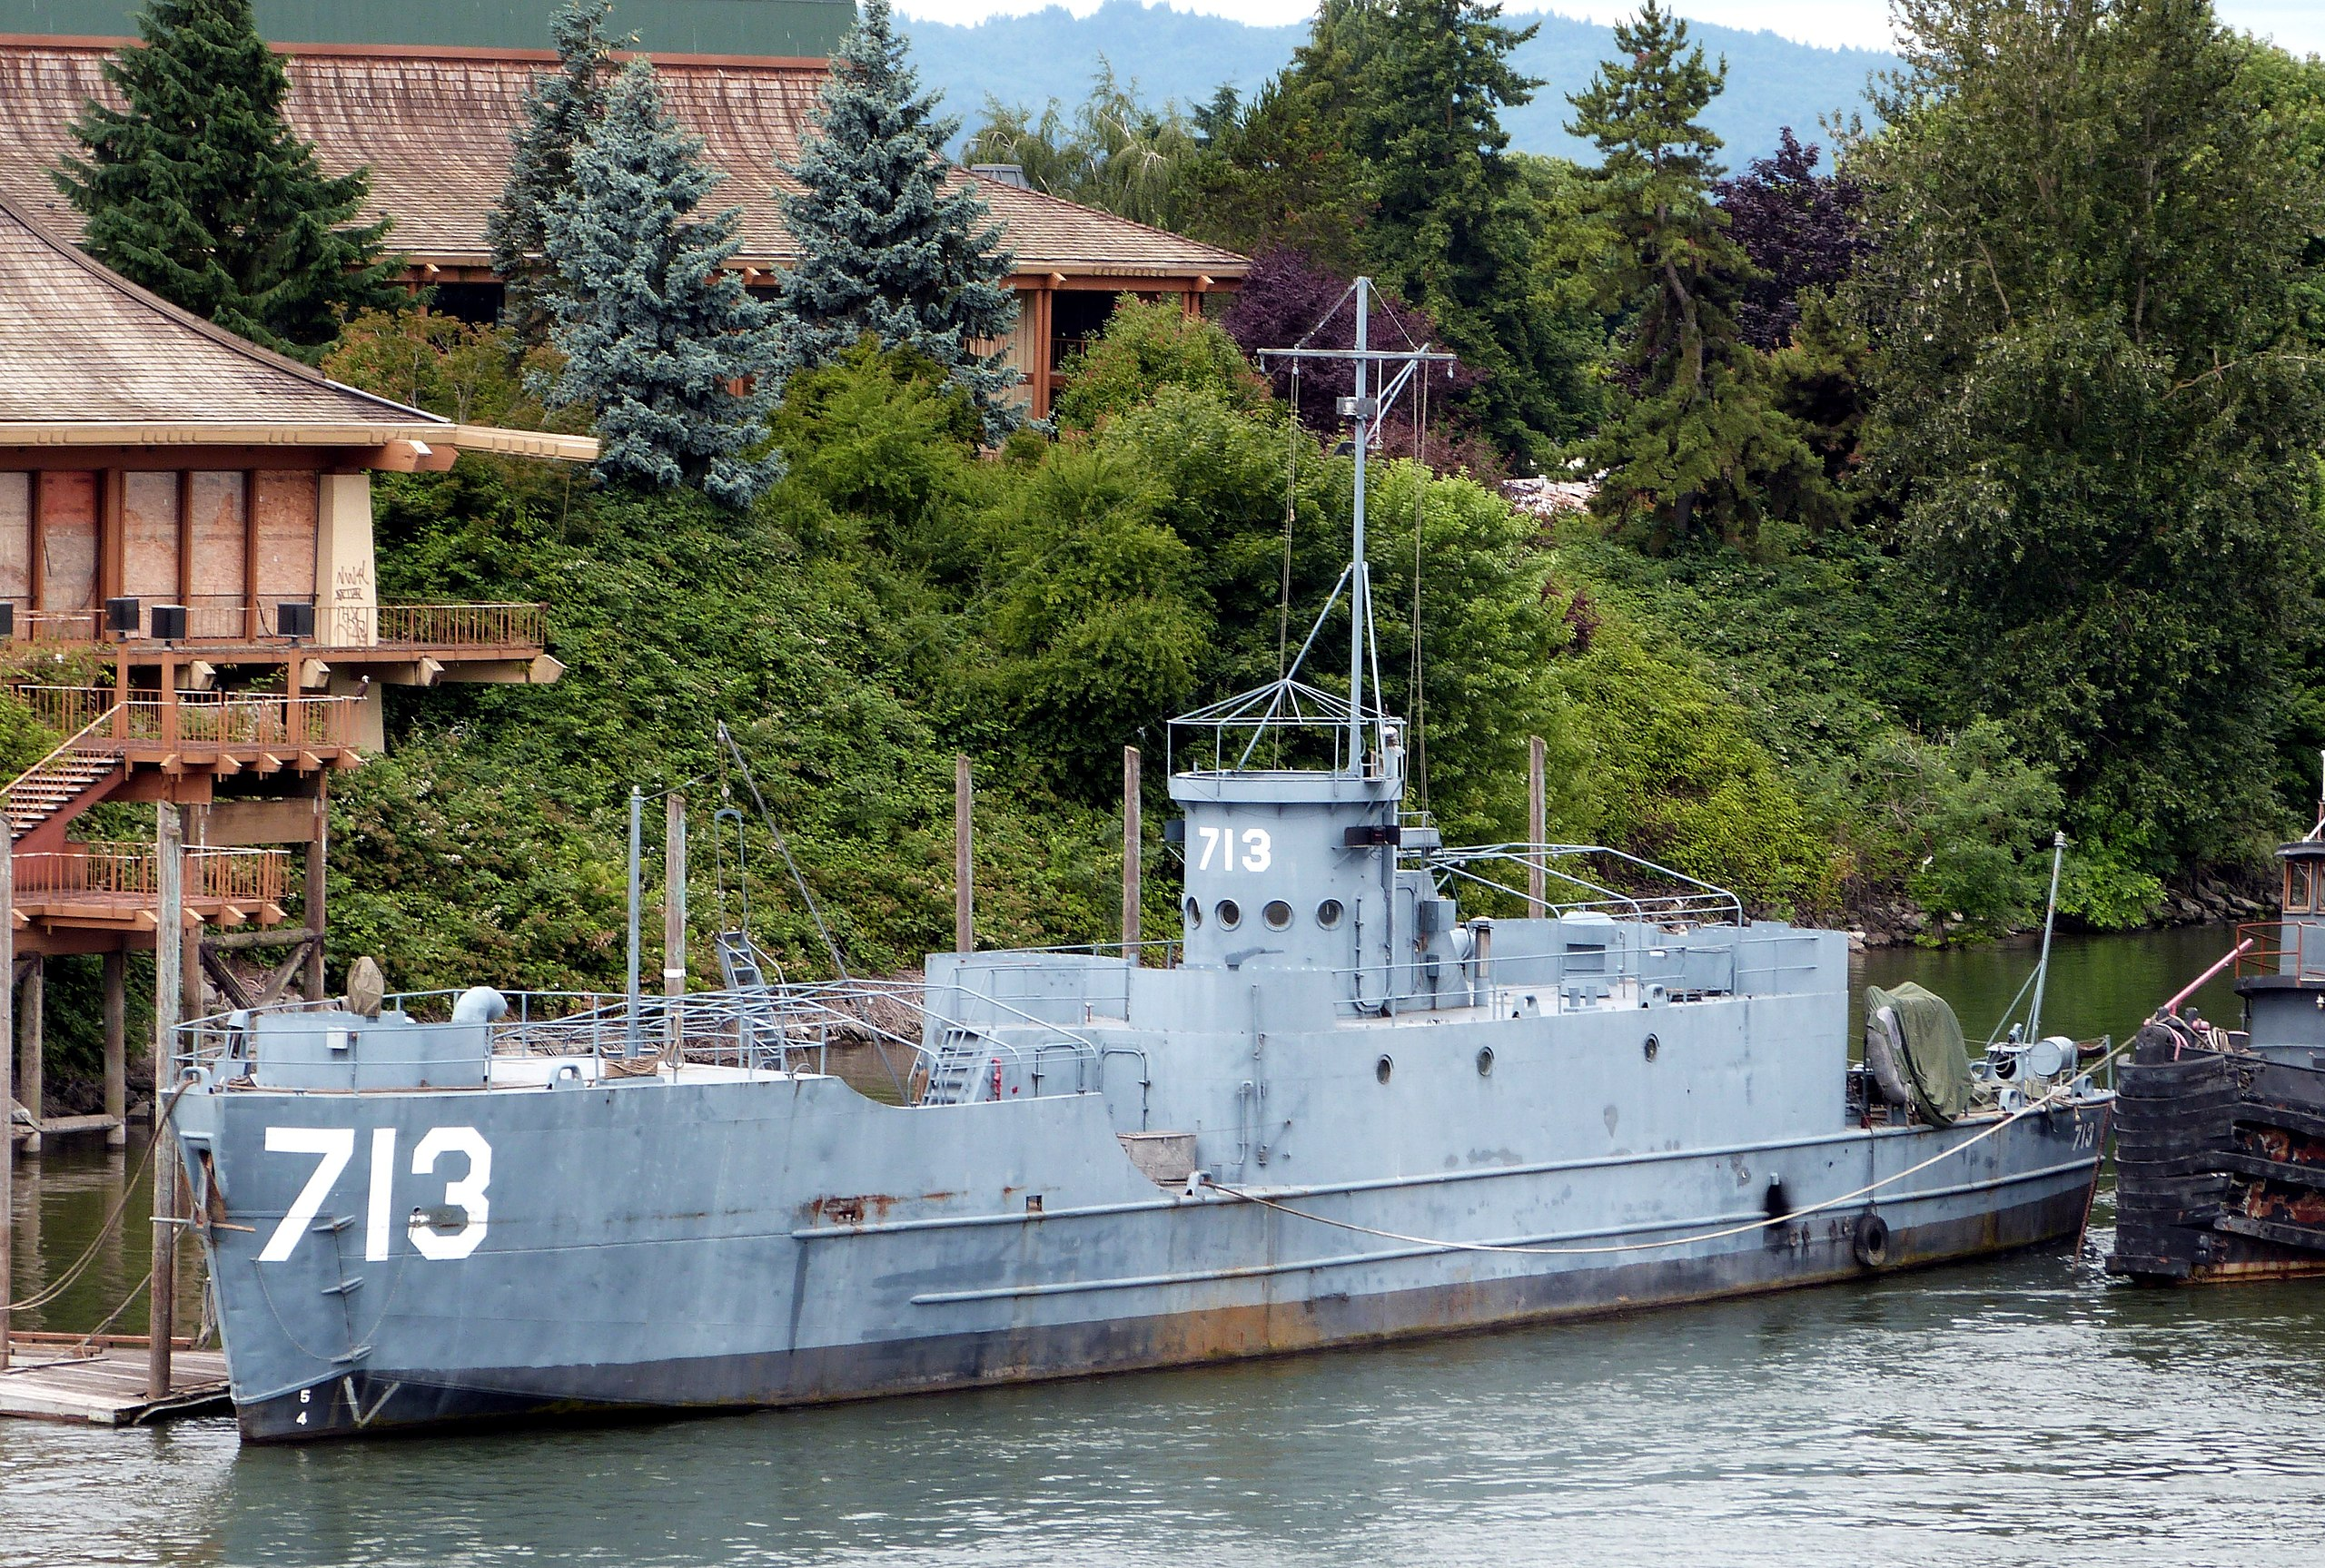 USS LCI-713 (Landing Craft)